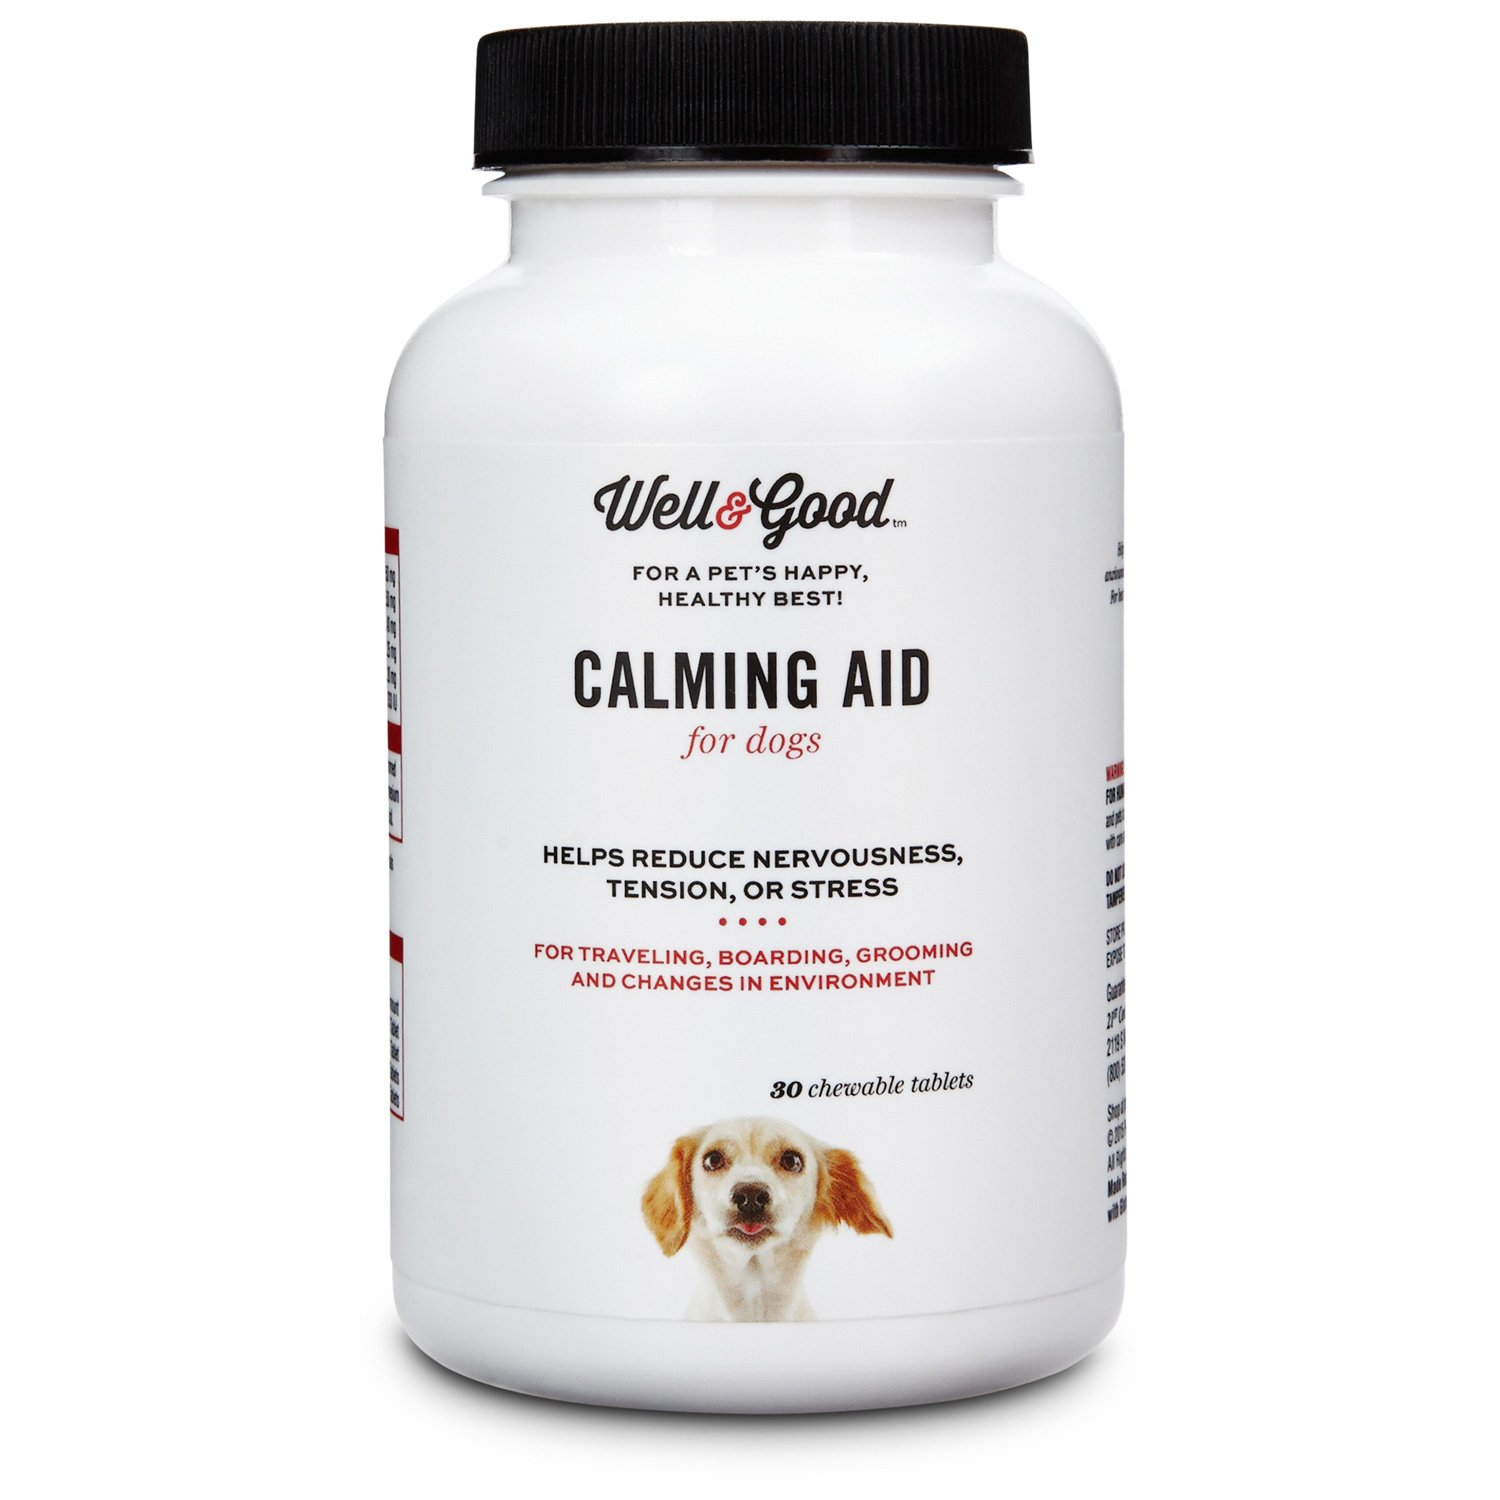 Well & Good Calming Aid Dog Tablets